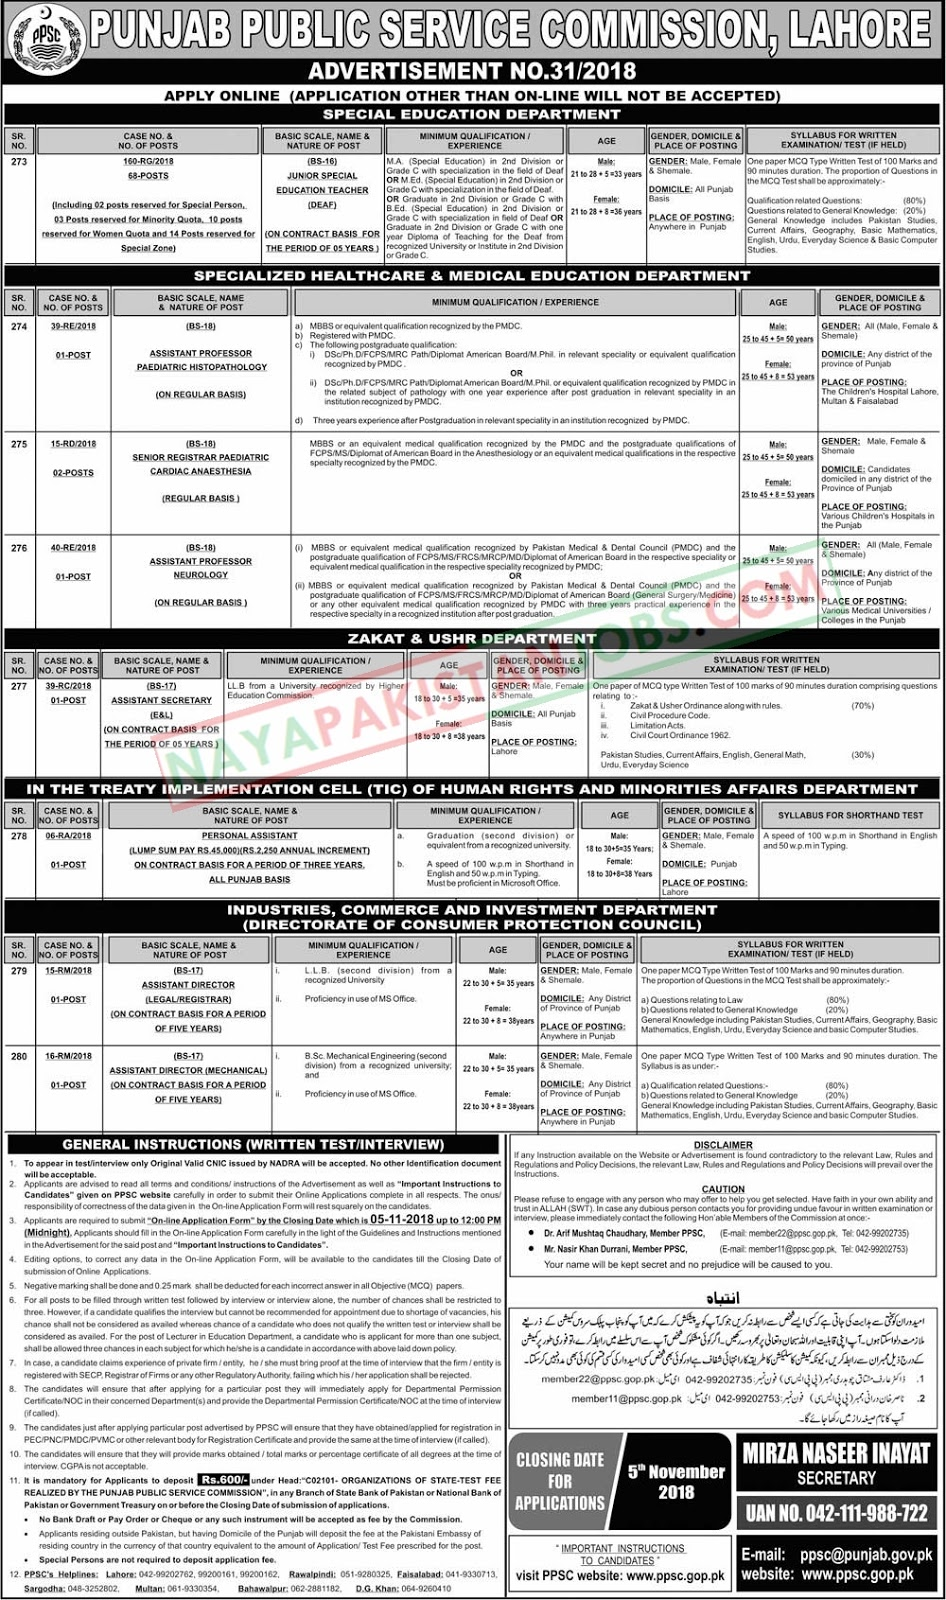 Latest Vacancies Announced in PPSC.GOP.PK Punjab Public Service Commission PPSC 21 October 2018 - Naya Pakistan